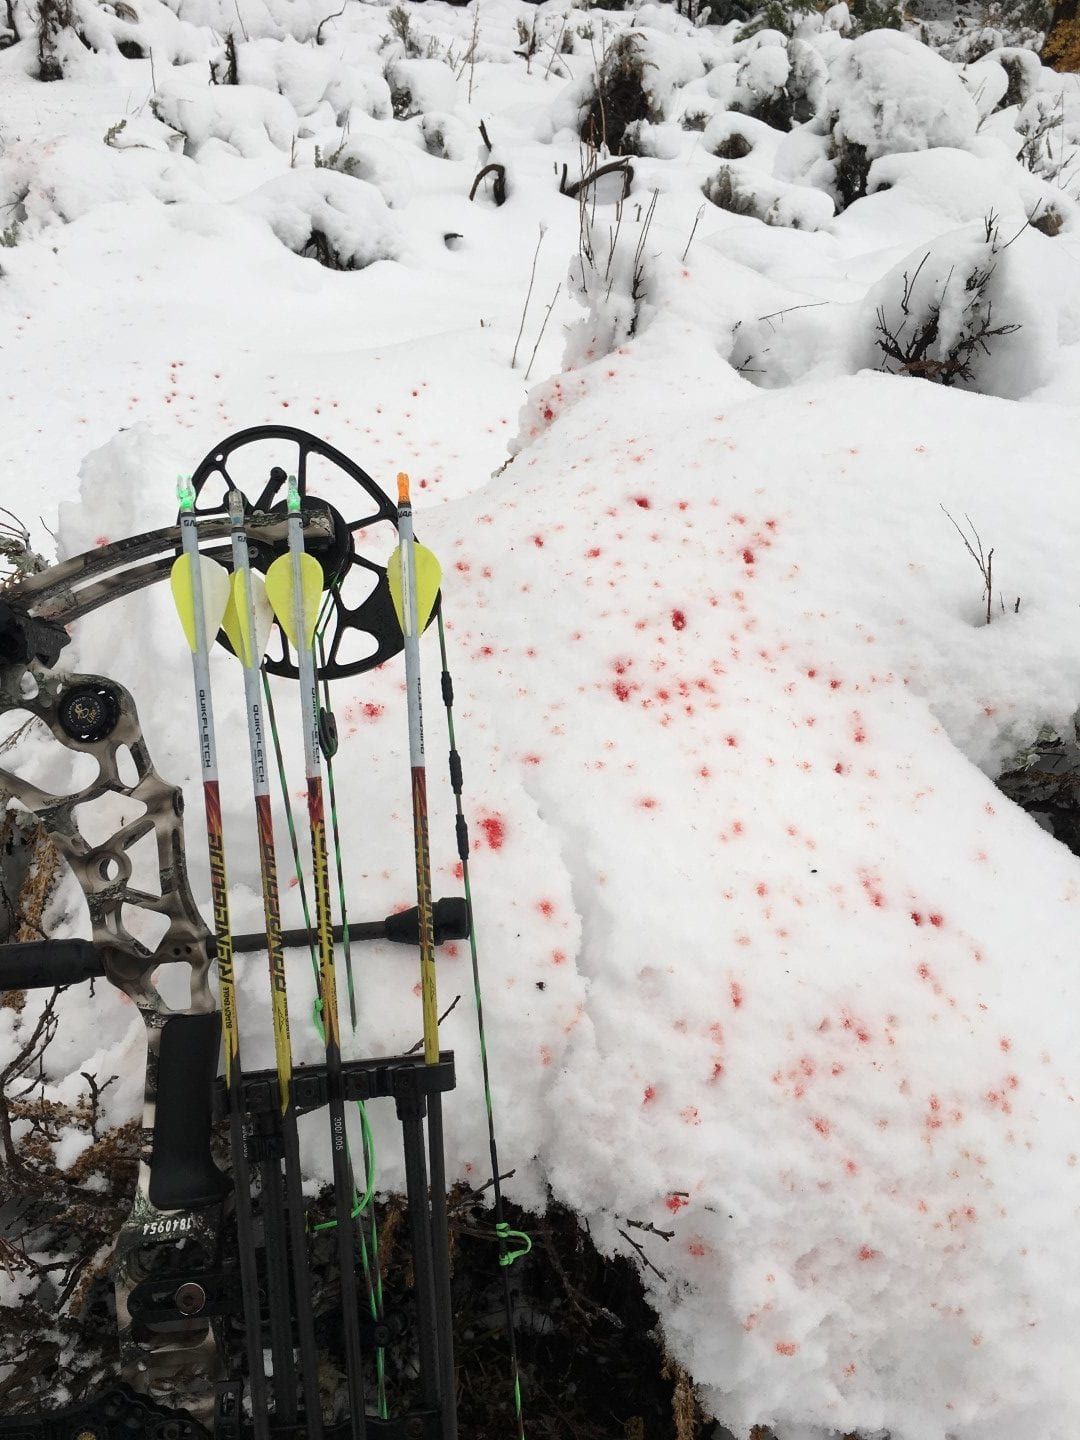 bloodtrail in the snow